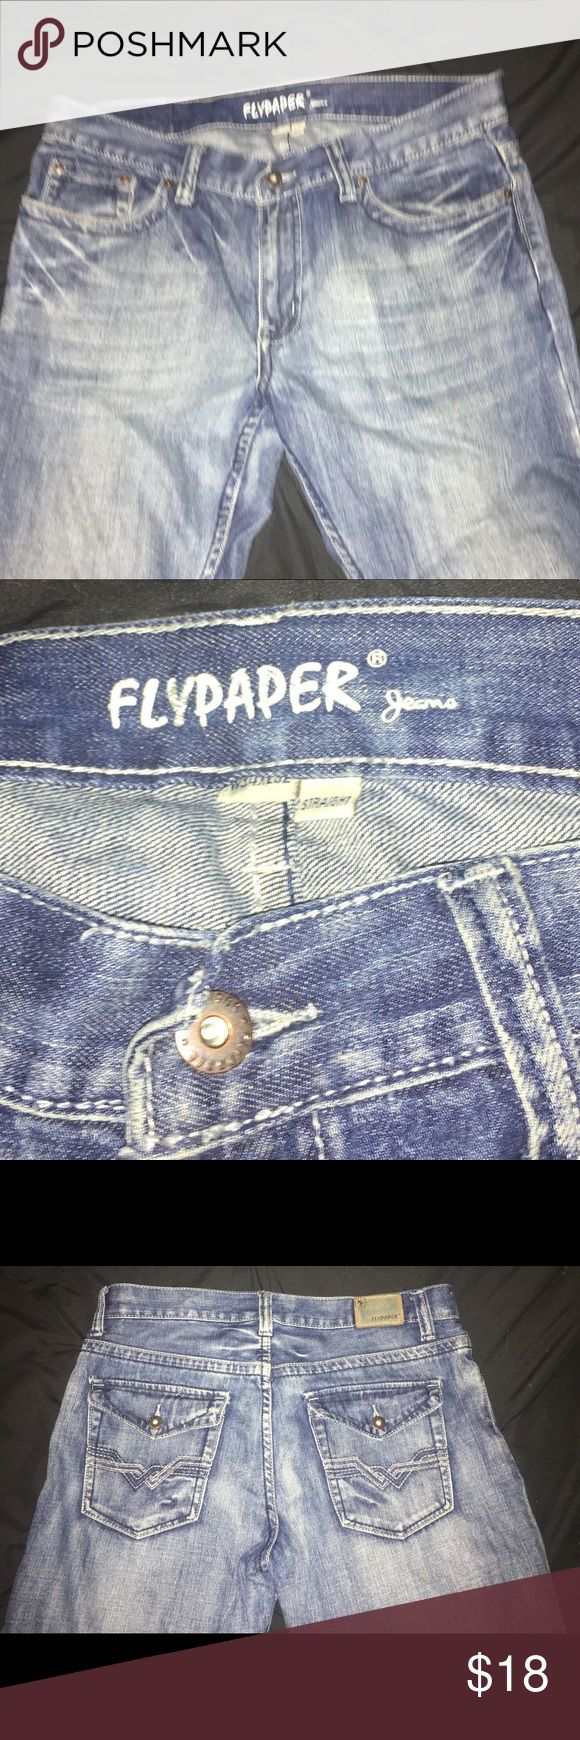 Men's Flypaper Jeans Men's size 34/32 Flypaper jeans. Great used condition Flypaper Jeans Straight